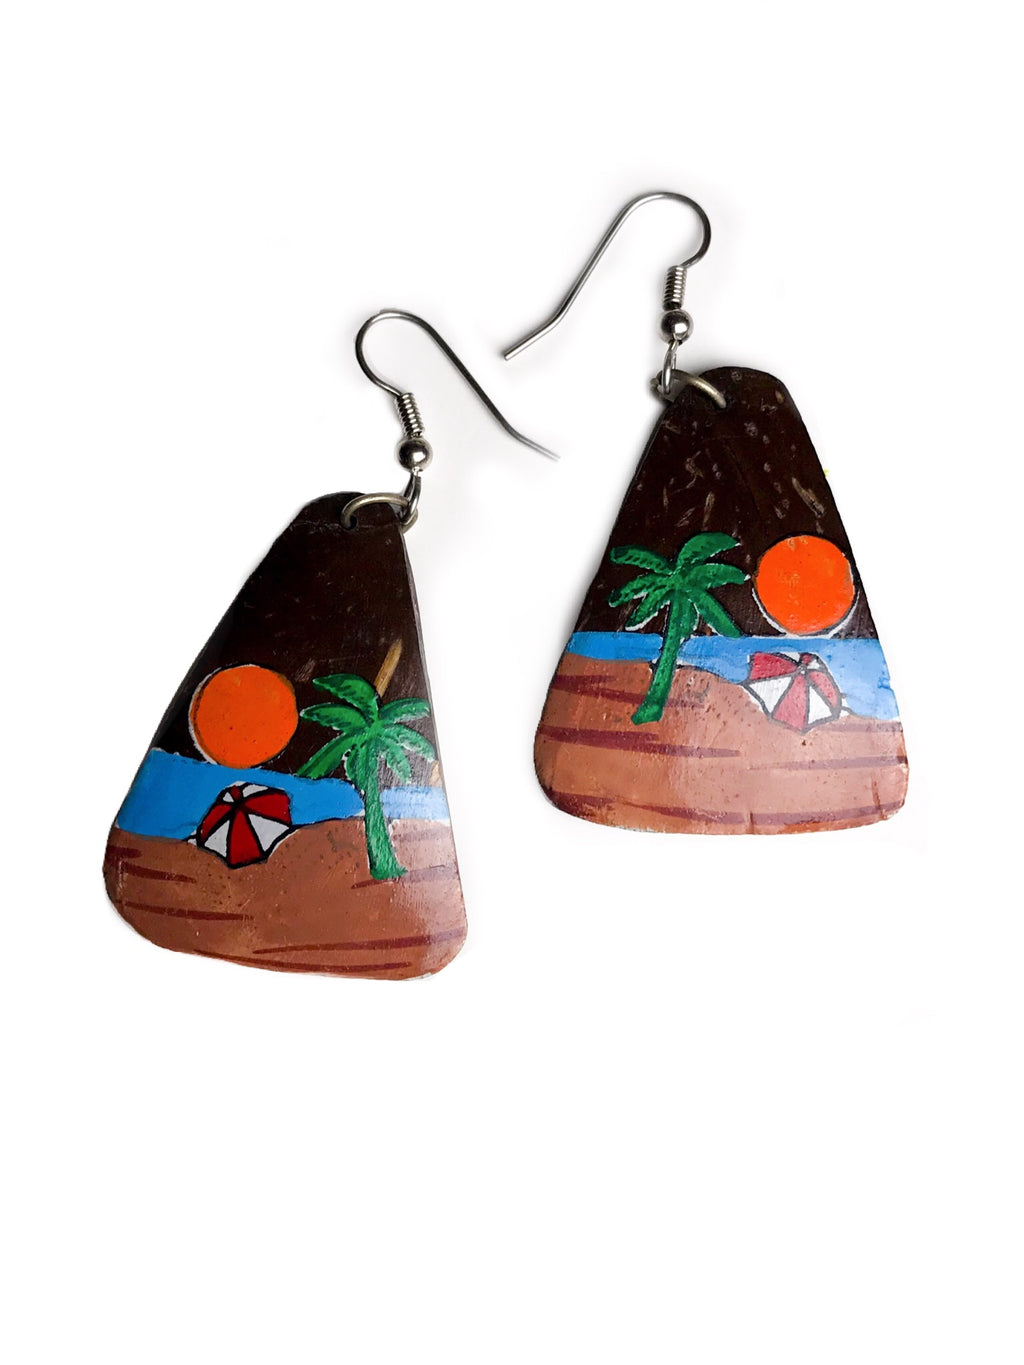 Isla Barbuda Earrings - Chen Burkett New York